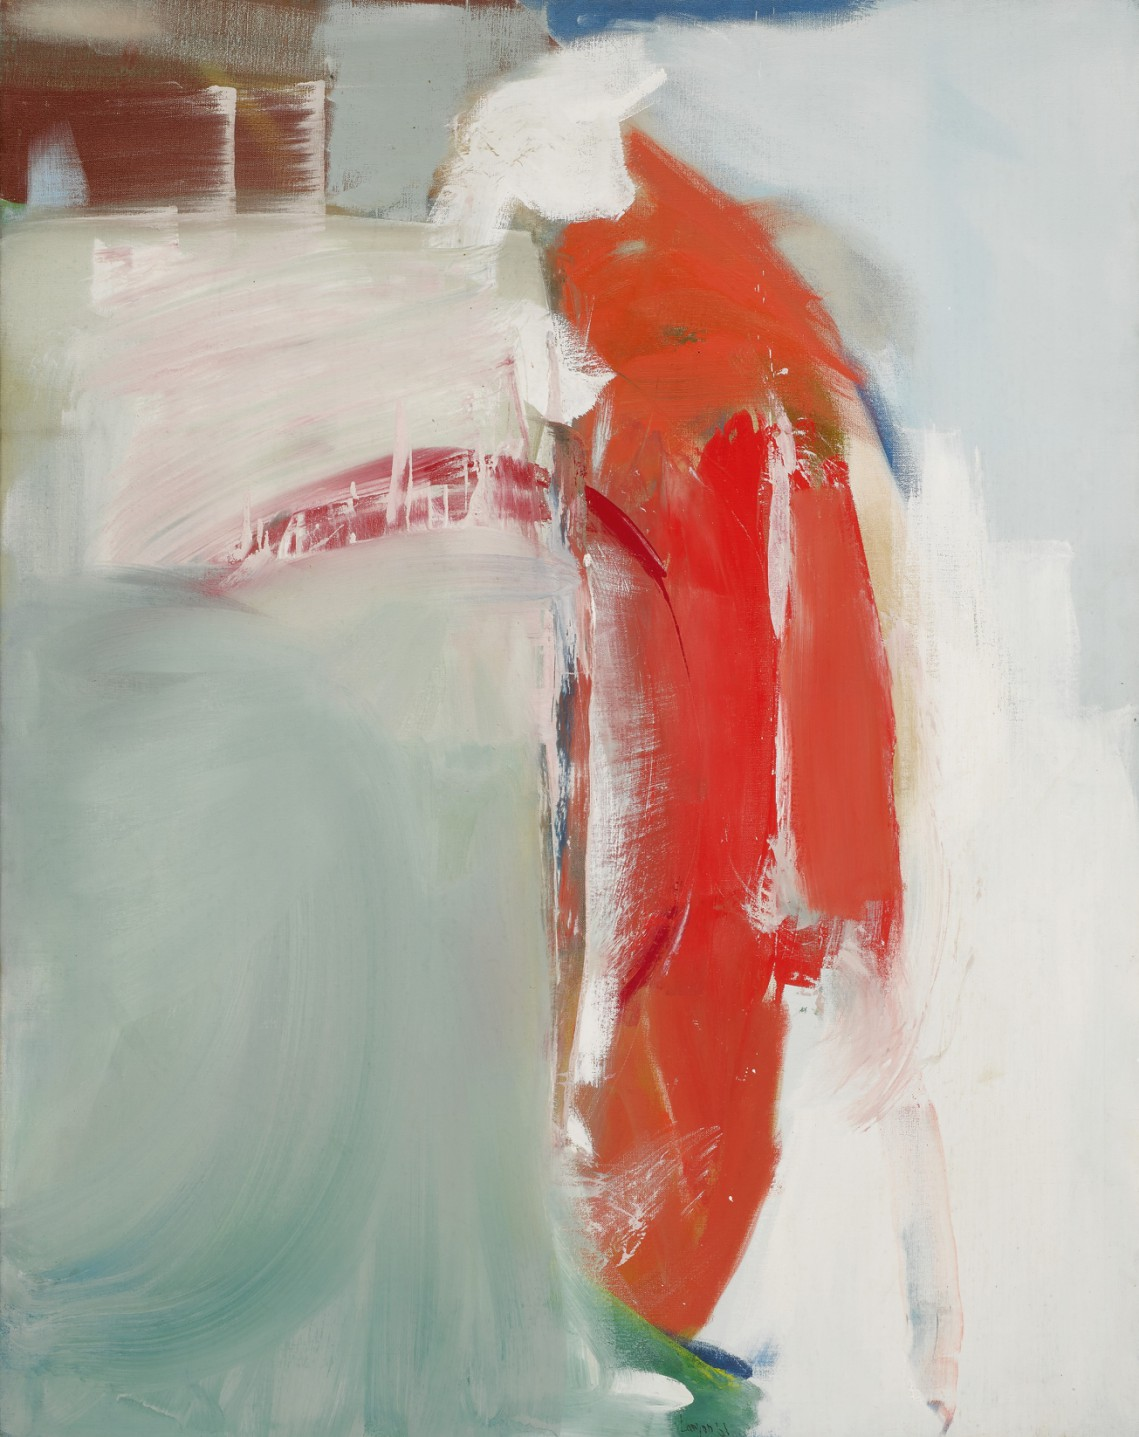 Lot 2- Peter Lanyon, Rising Air, 1961, oil on canvas, 60 by 48in.jpg